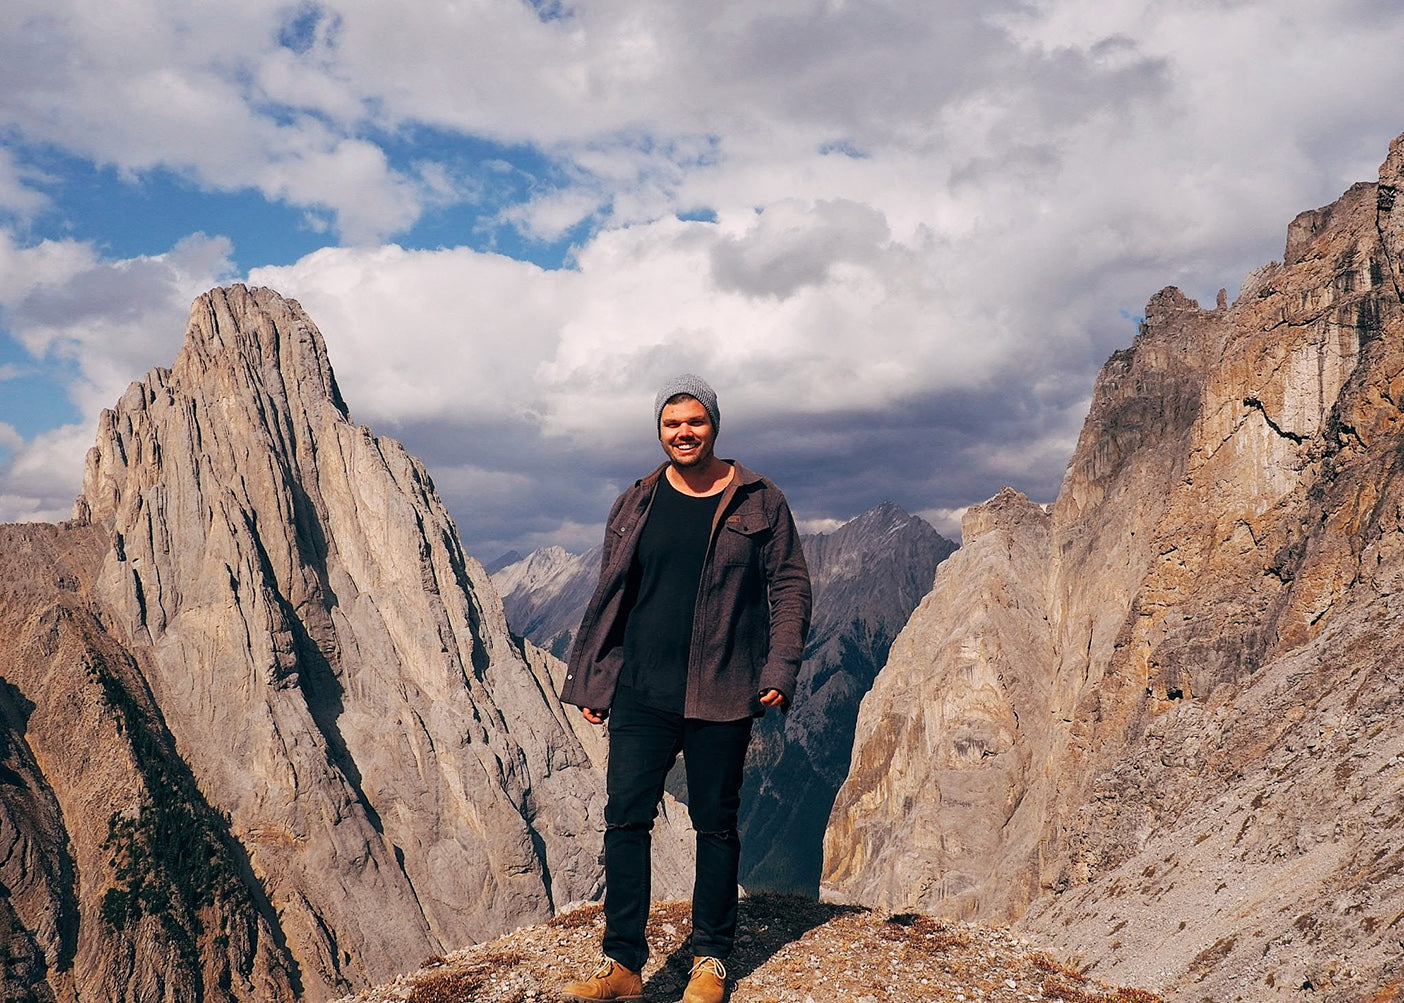 Traveler Josh Henry is on a mission, nears 70 countries while giving back